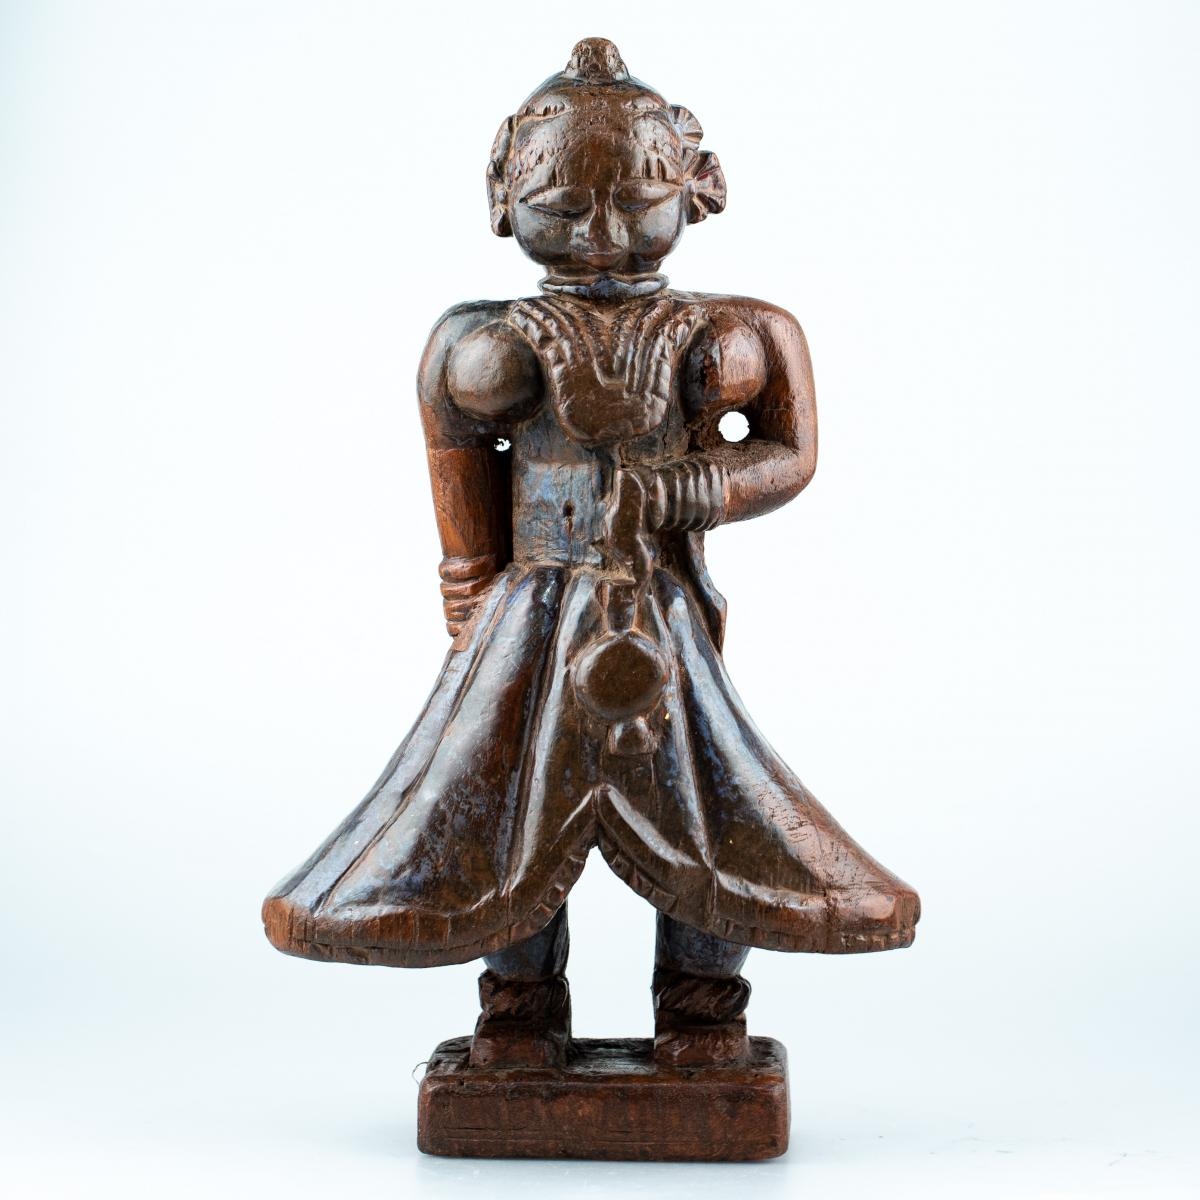 Carved Wood - India 17th Or 18th Century